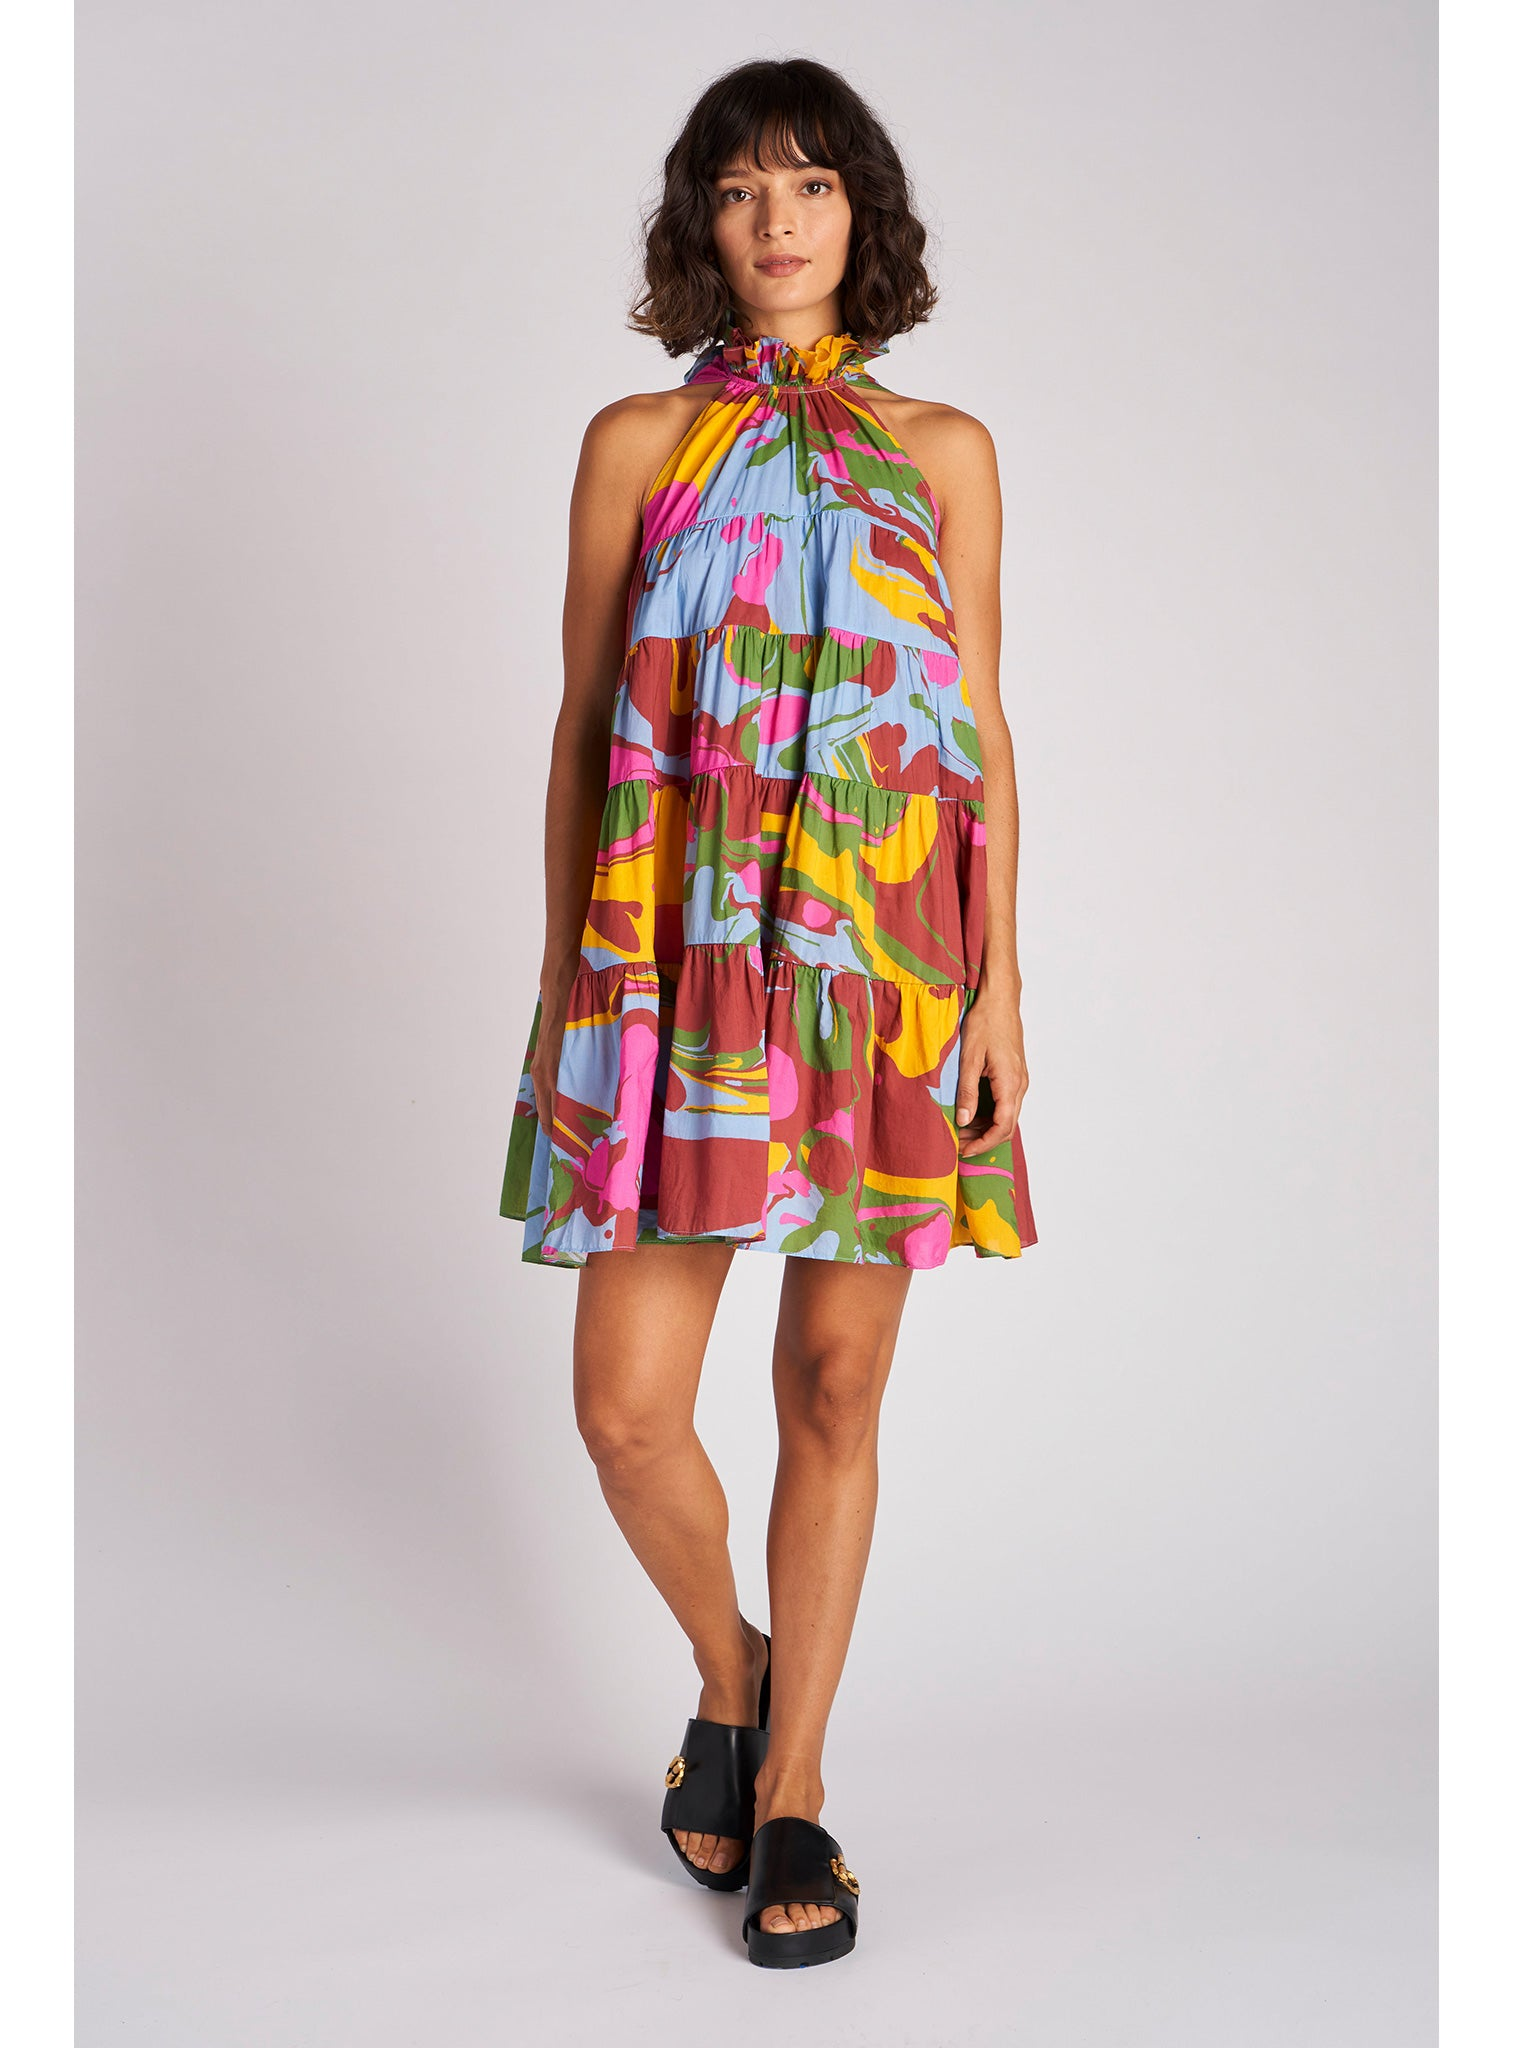 Billy Dress | Swirl